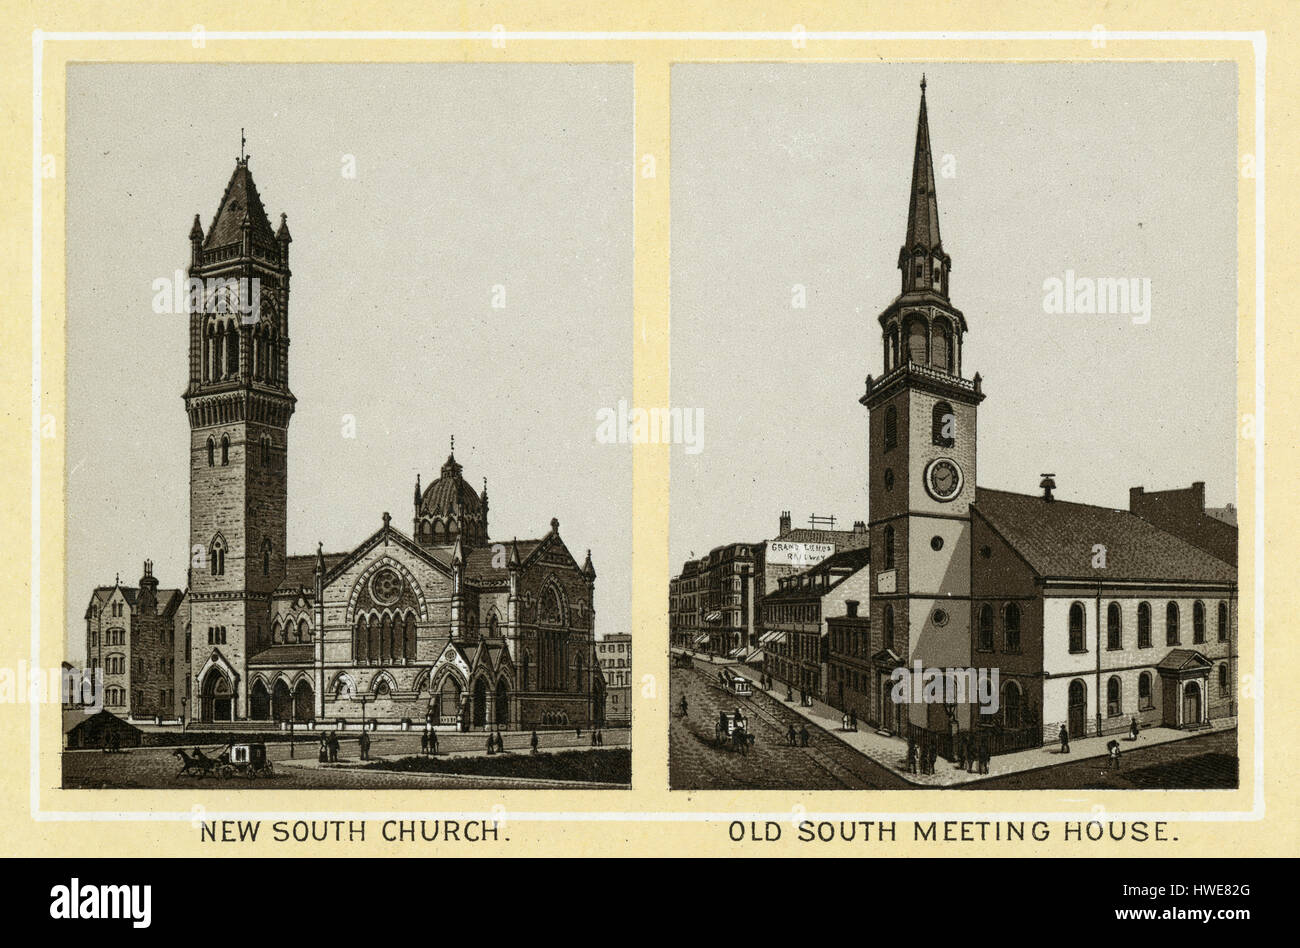 Antique 1883 monochromatic print from a souvenir album, showing the New Old South Church and Old South Meeting House - Stock Image